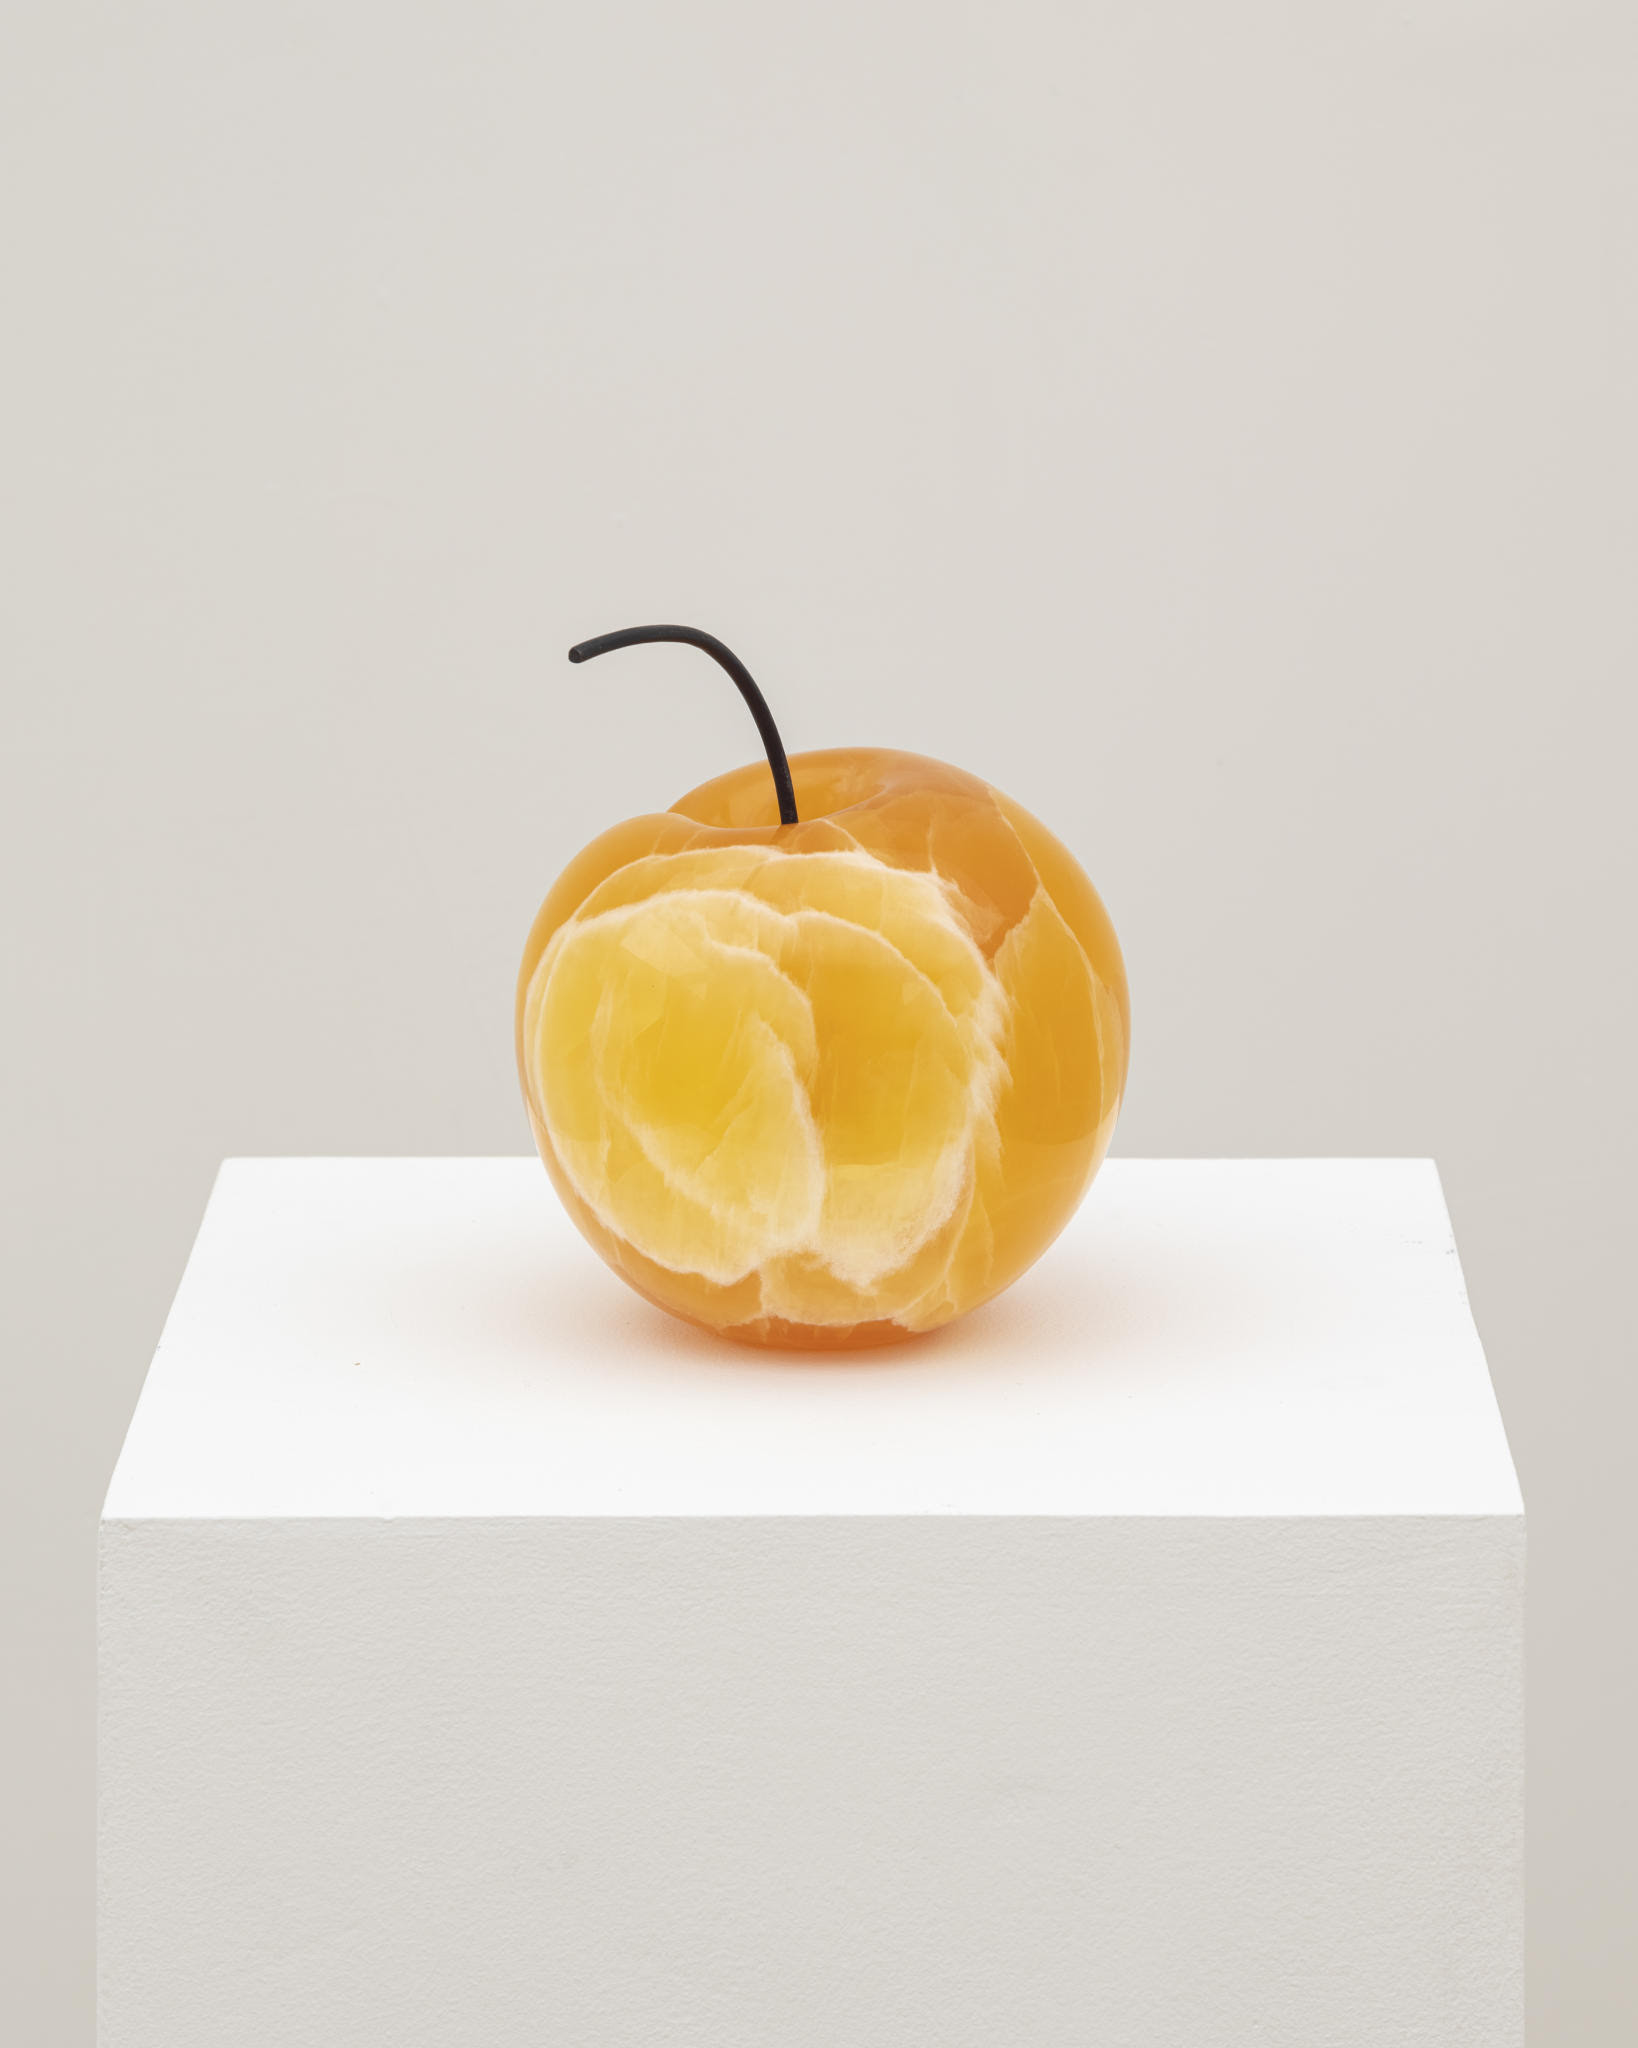 This artwork by the artist Nevine Mahmoud depicts an orange-colored peach sculpture placed upright on a white pedestal. The sculpture has various shades of orange, yellow and white, as well as a brown, slightly curled stem on top of the sculpture.